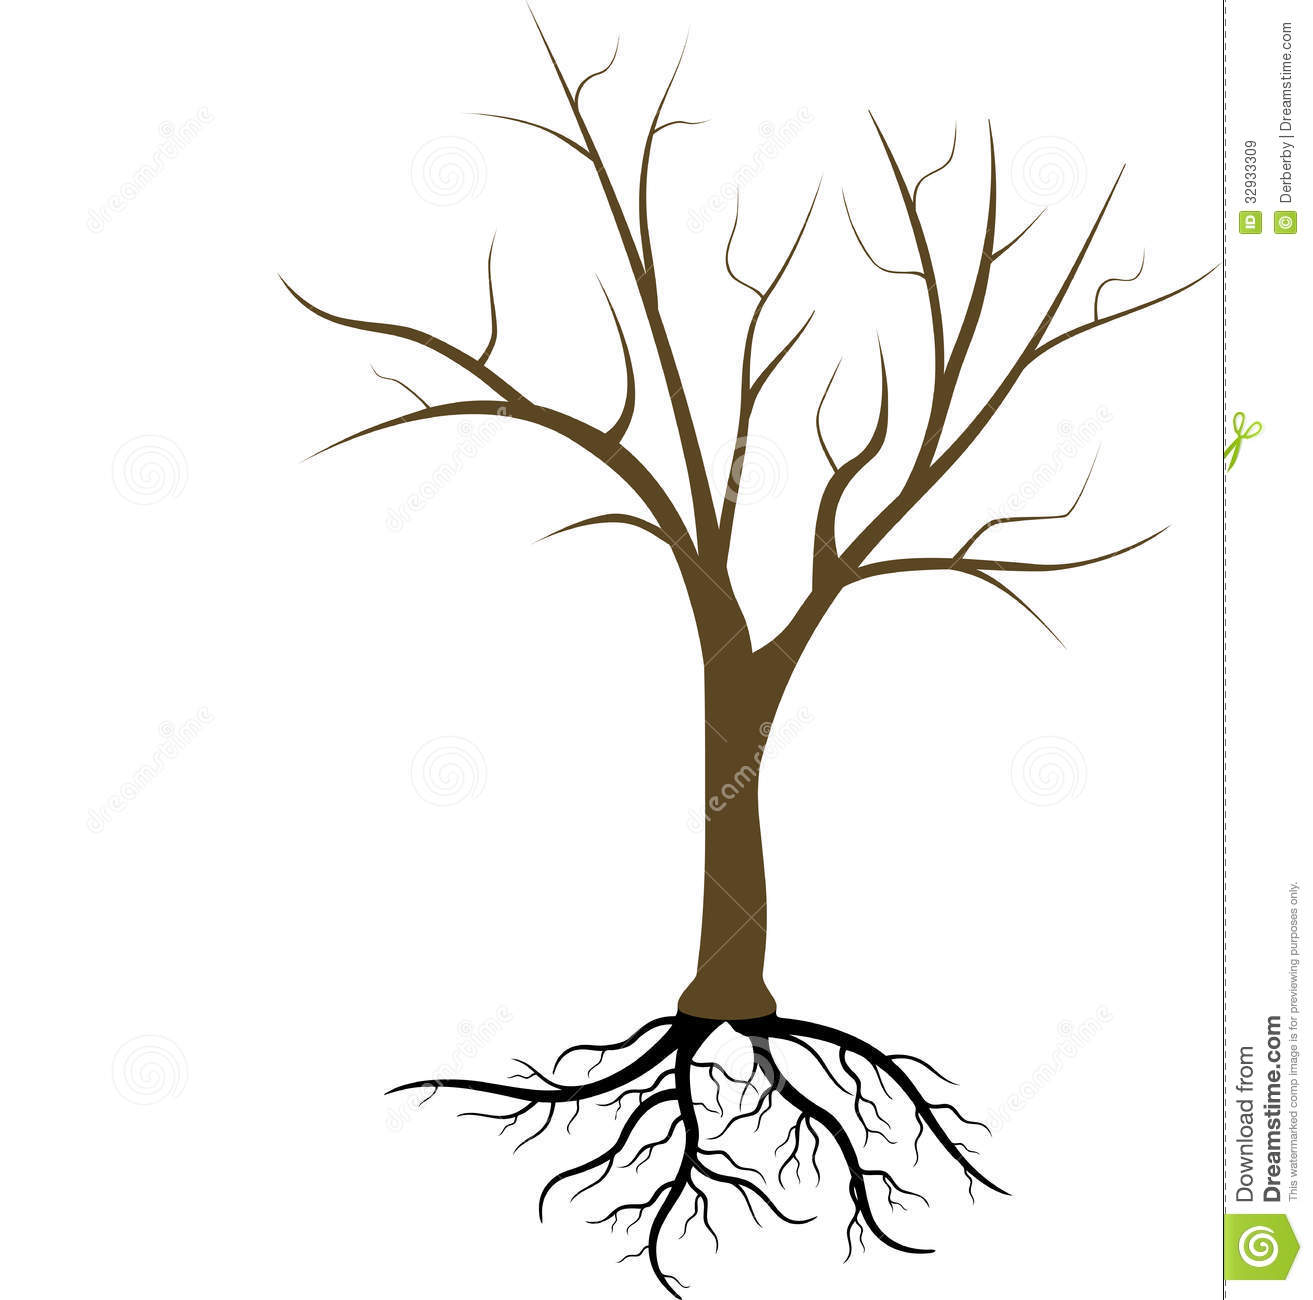 Tree Without Leaves Clipart - Clipart Suggest